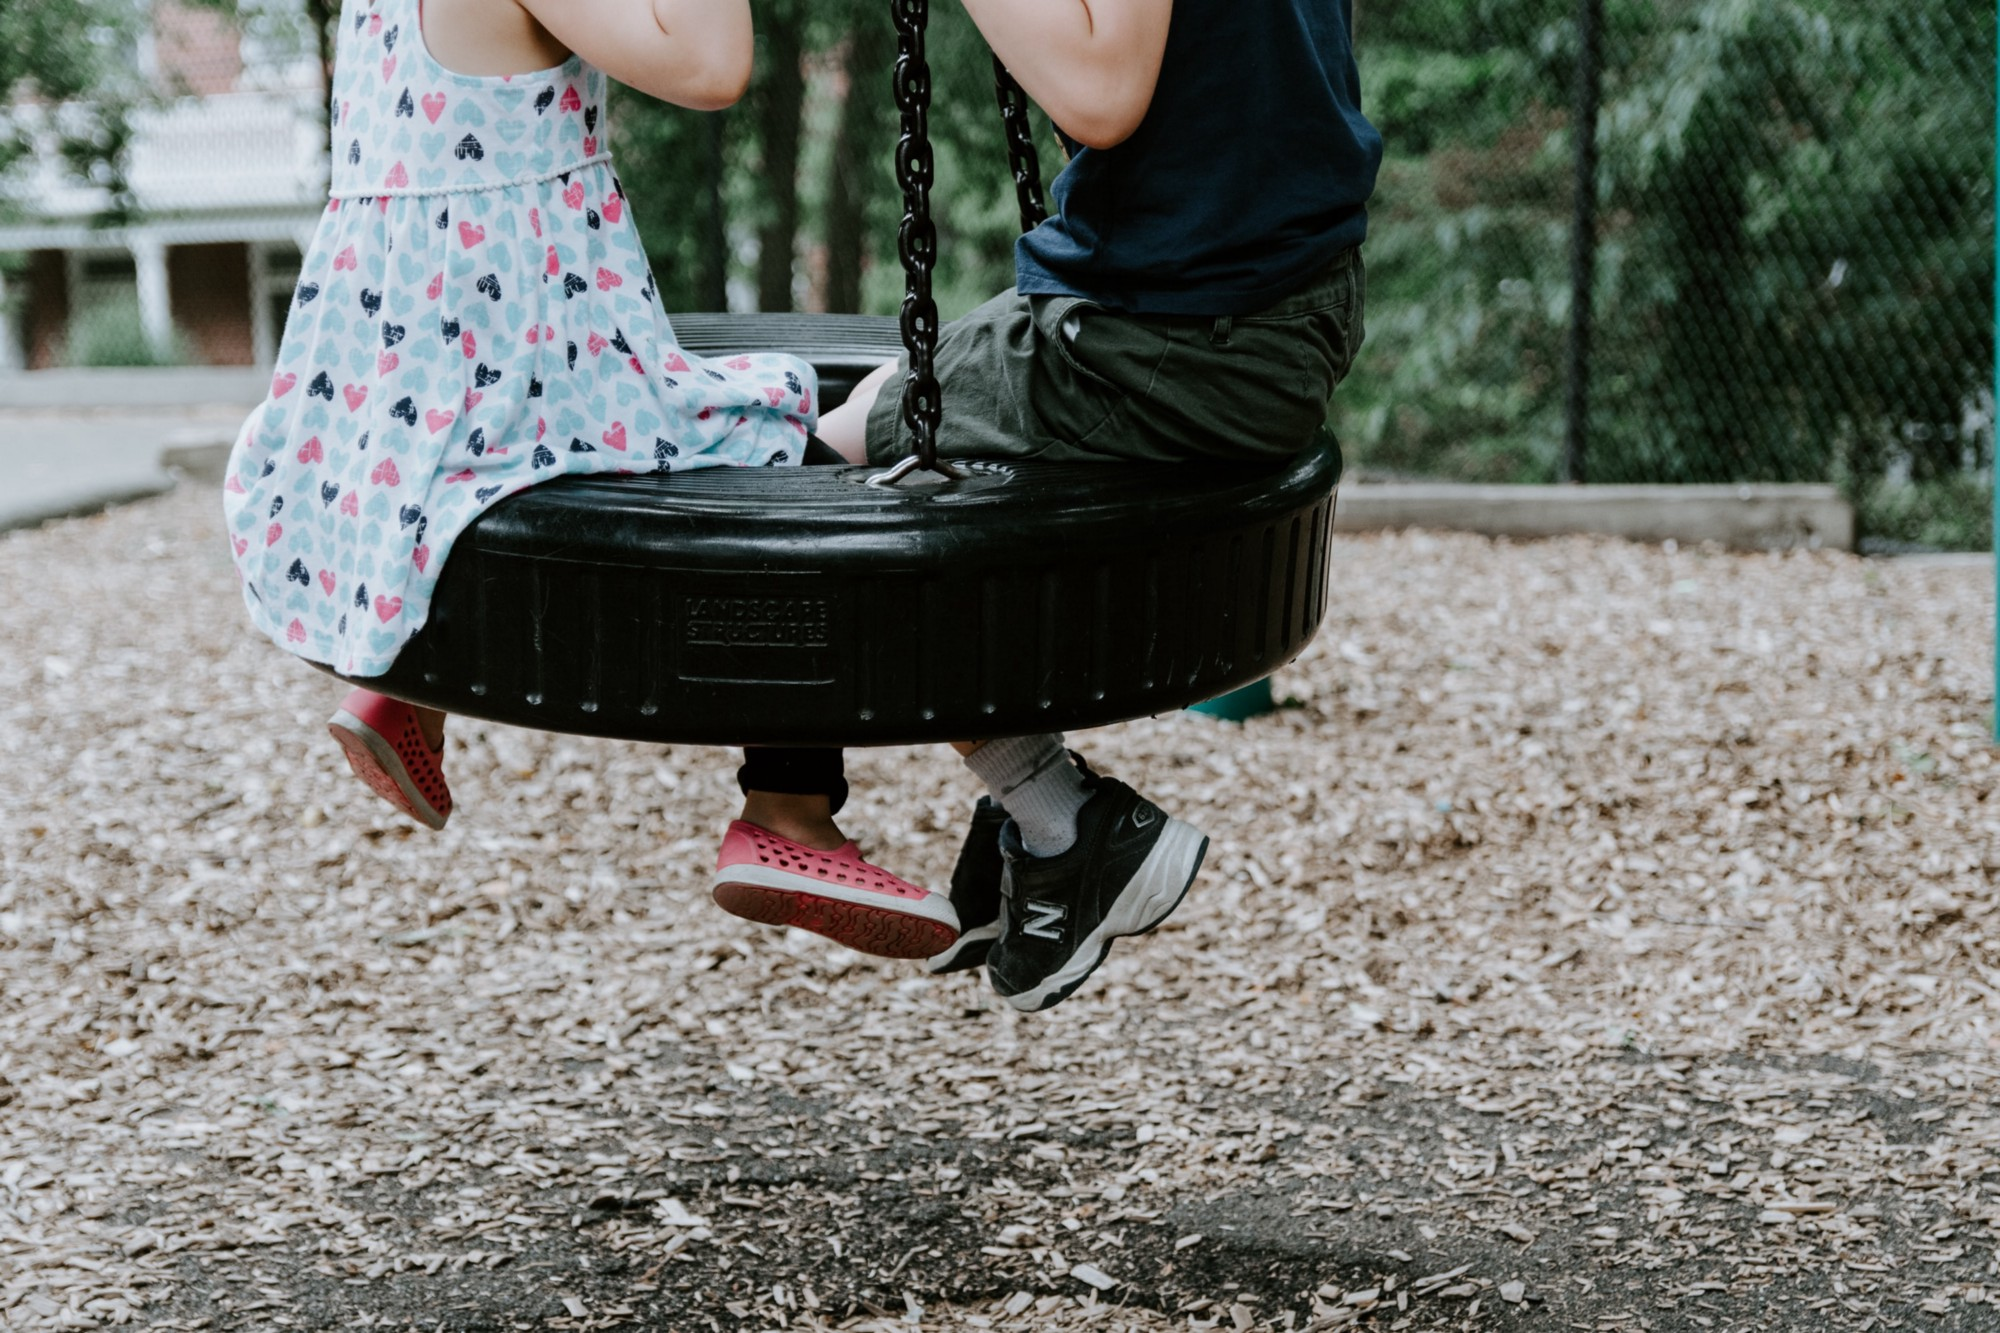 A close-up shot of two children on a tire swing. One is wearing a patterned dress and pink shoes. The other is wearing a dark navy shirt, dark green shorts, and black shoes. They are on a playground with wood chips on the ground and trees in the background